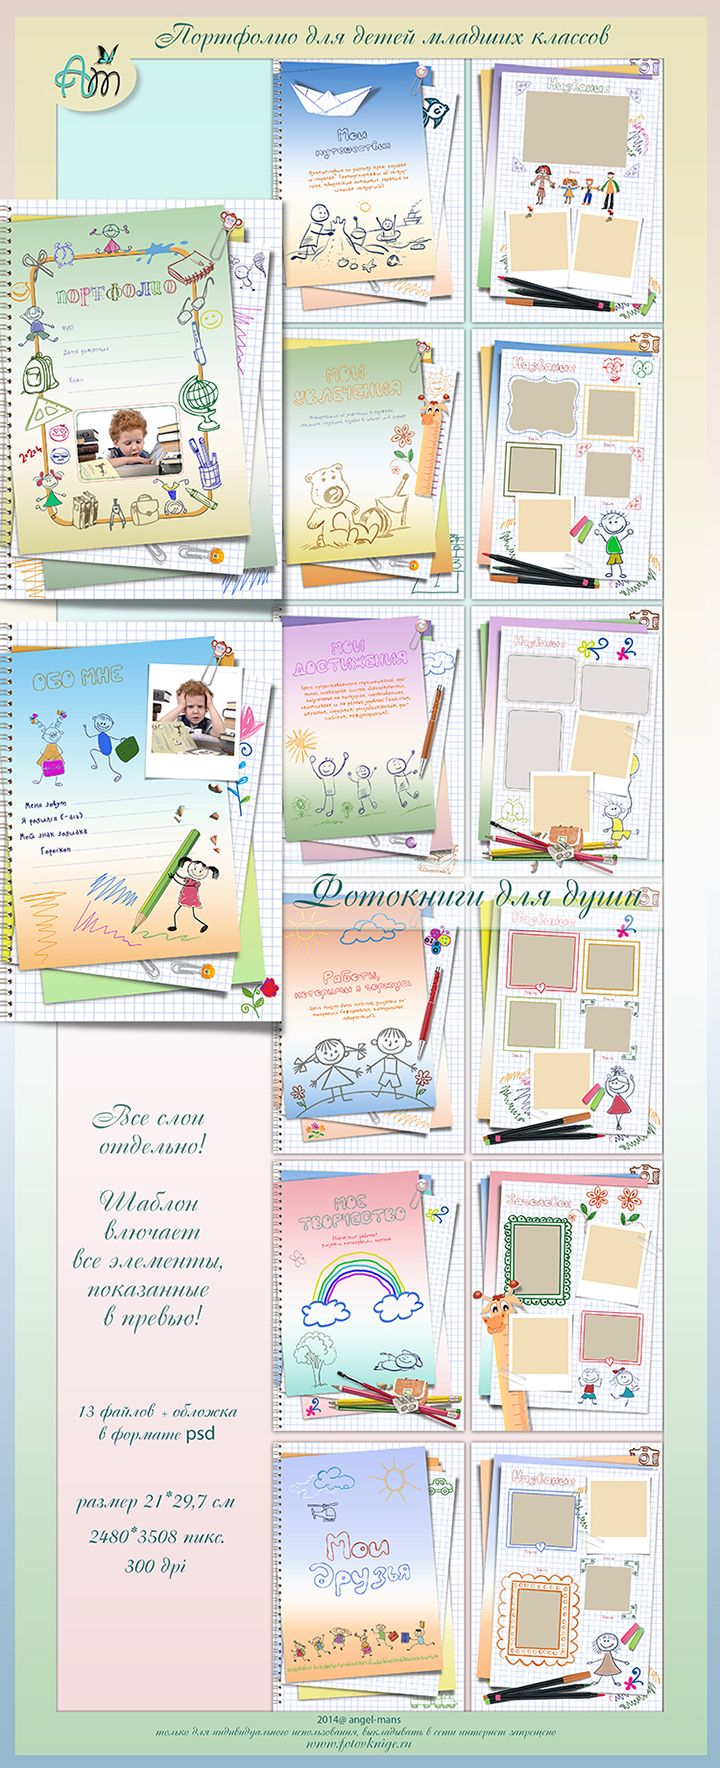 """Templates photobooks, photo albums, photo albums for Photoshop, scrapbooking, photo books to order, custom design layouts photobooks, portfolio, design photos, designer photo books and photo albums. More can be seen at """"Photo books for the soul."""" All materials can be purchased."""